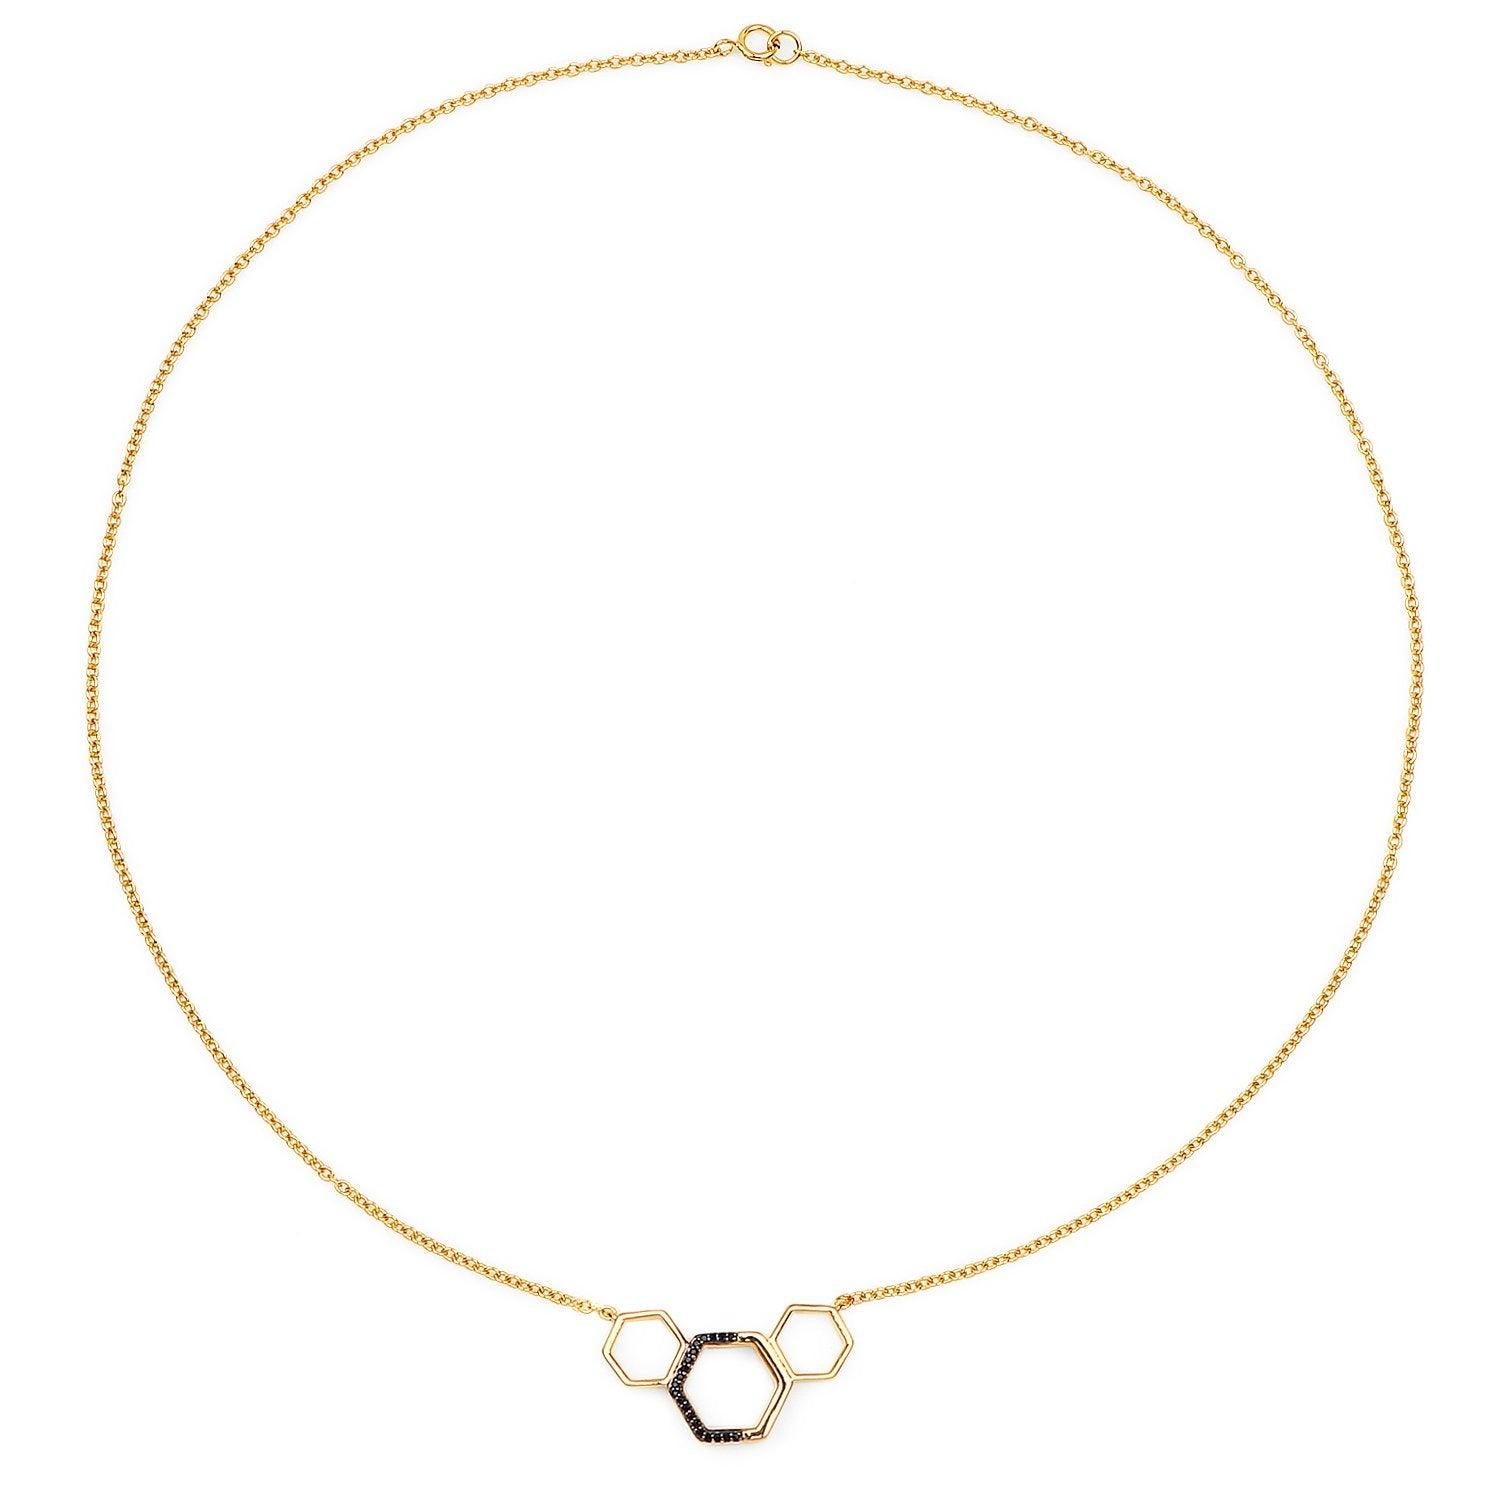 LoveHuang 0.11 Carats Genuine Black Spinel Minimalist Hexagon Necklace Solid .925 Sterling Silver With 18KT Yellow Gold Plating, 18Inch Chain